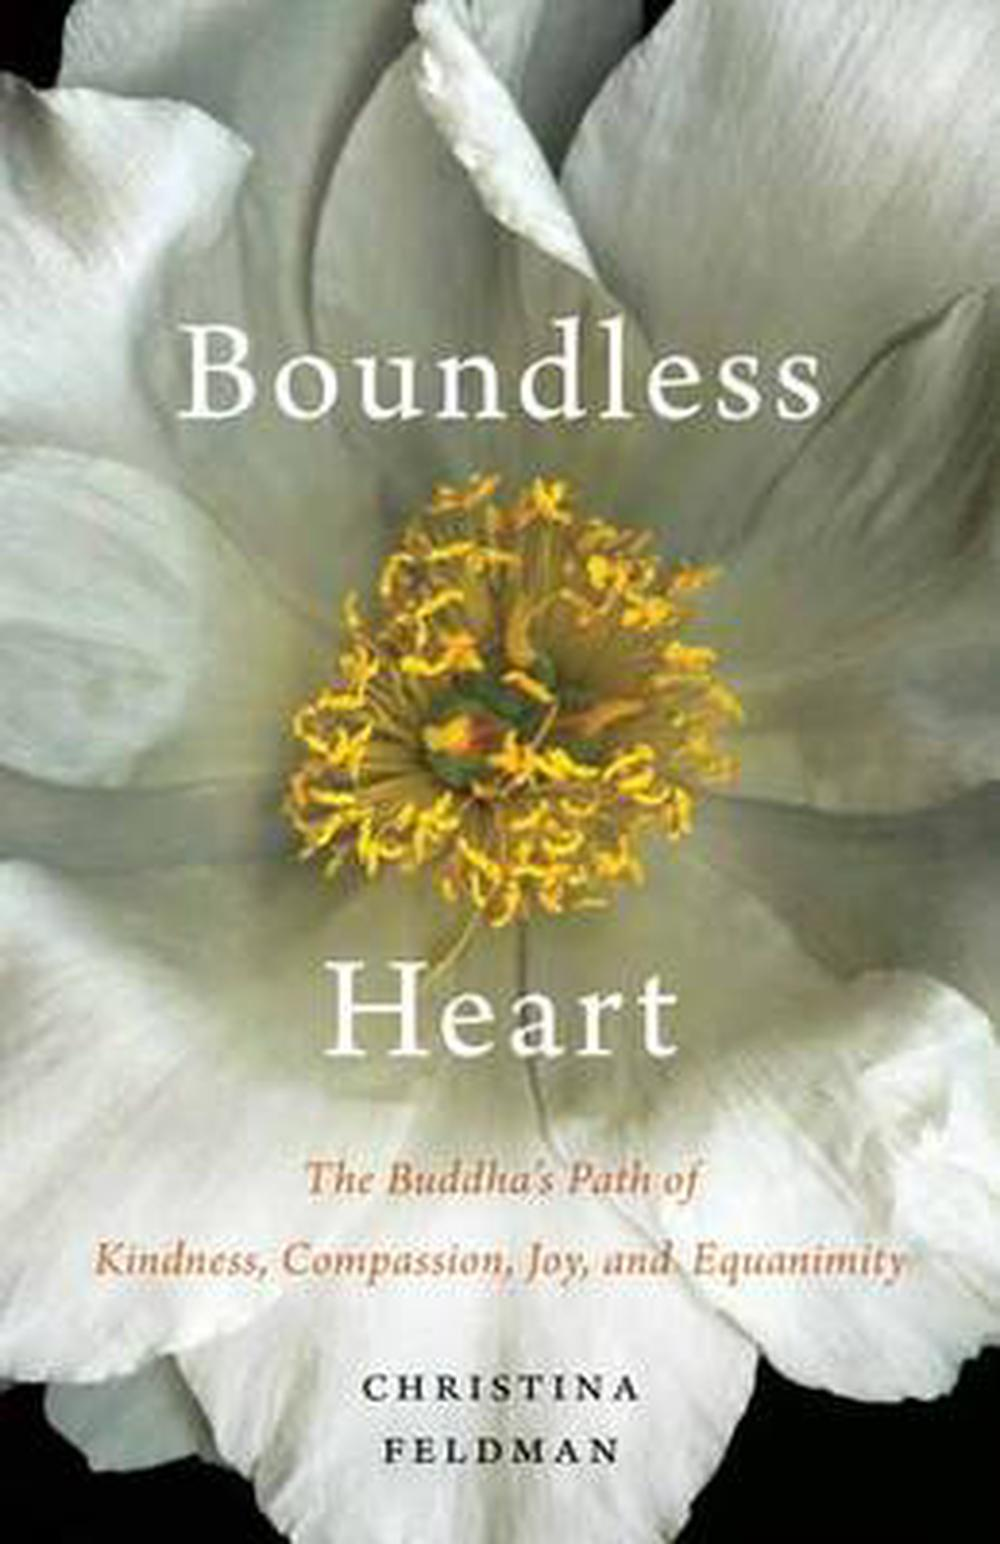 Boundless Heart: Walking the Path of Kindness, Compassion, Joy, and Equanimity